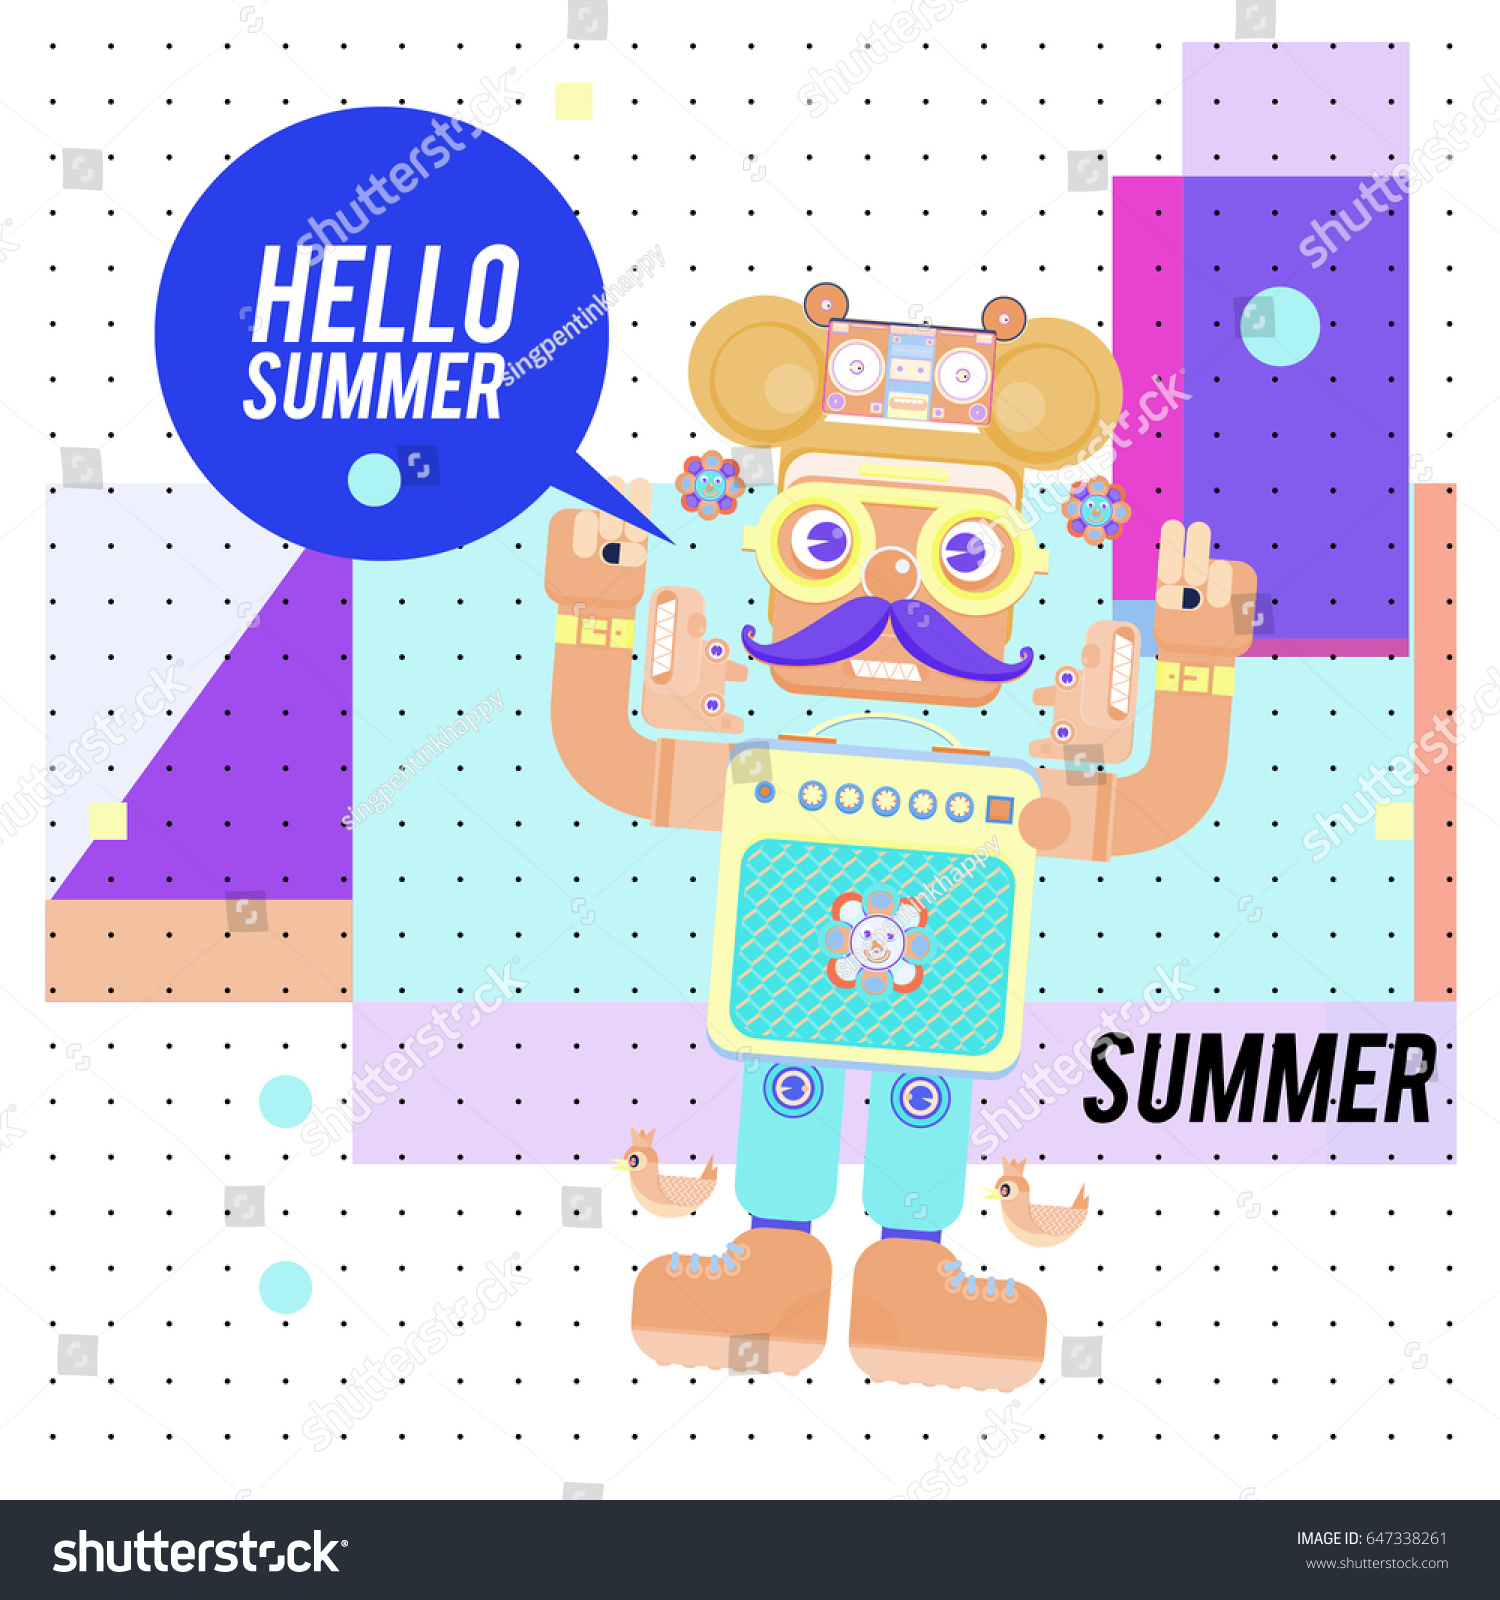 Charmant Trendy Geometric Elements Memphis Summer Greeting Cards Design. Retro Style  Robot Saying Hello Summer.